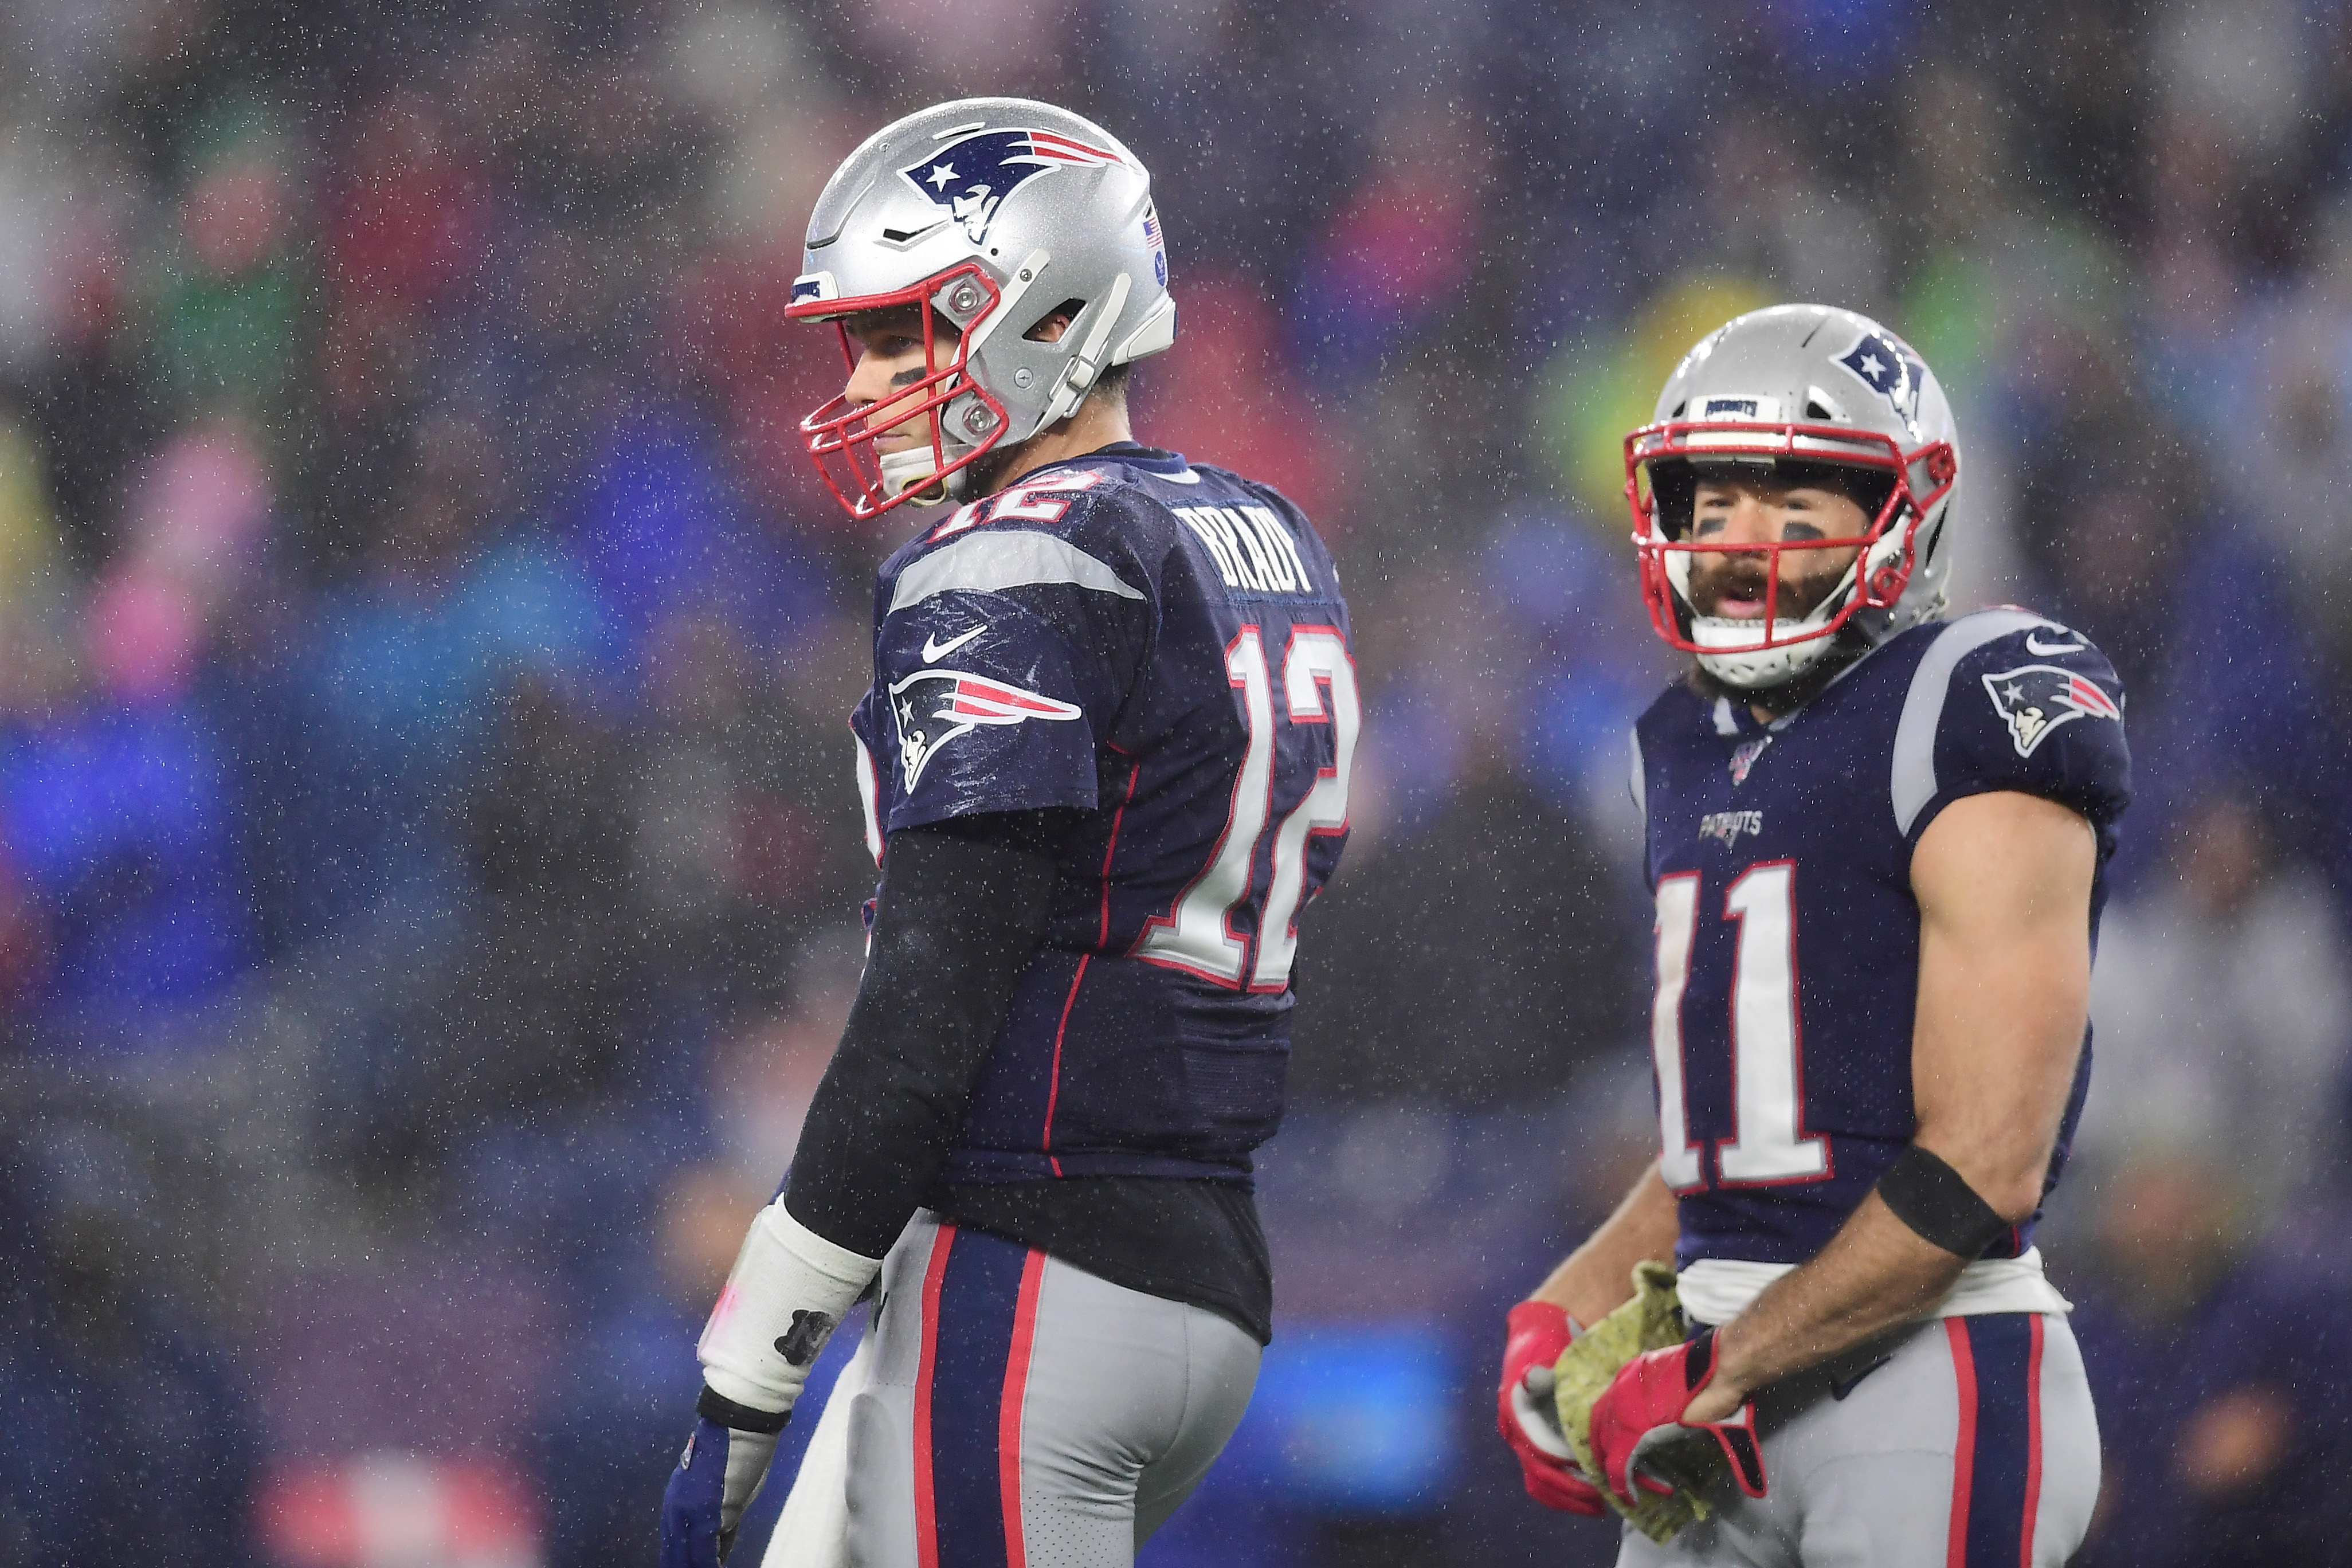 Tom Brady and Julian Edelman on the field together in Patriots uniforms.